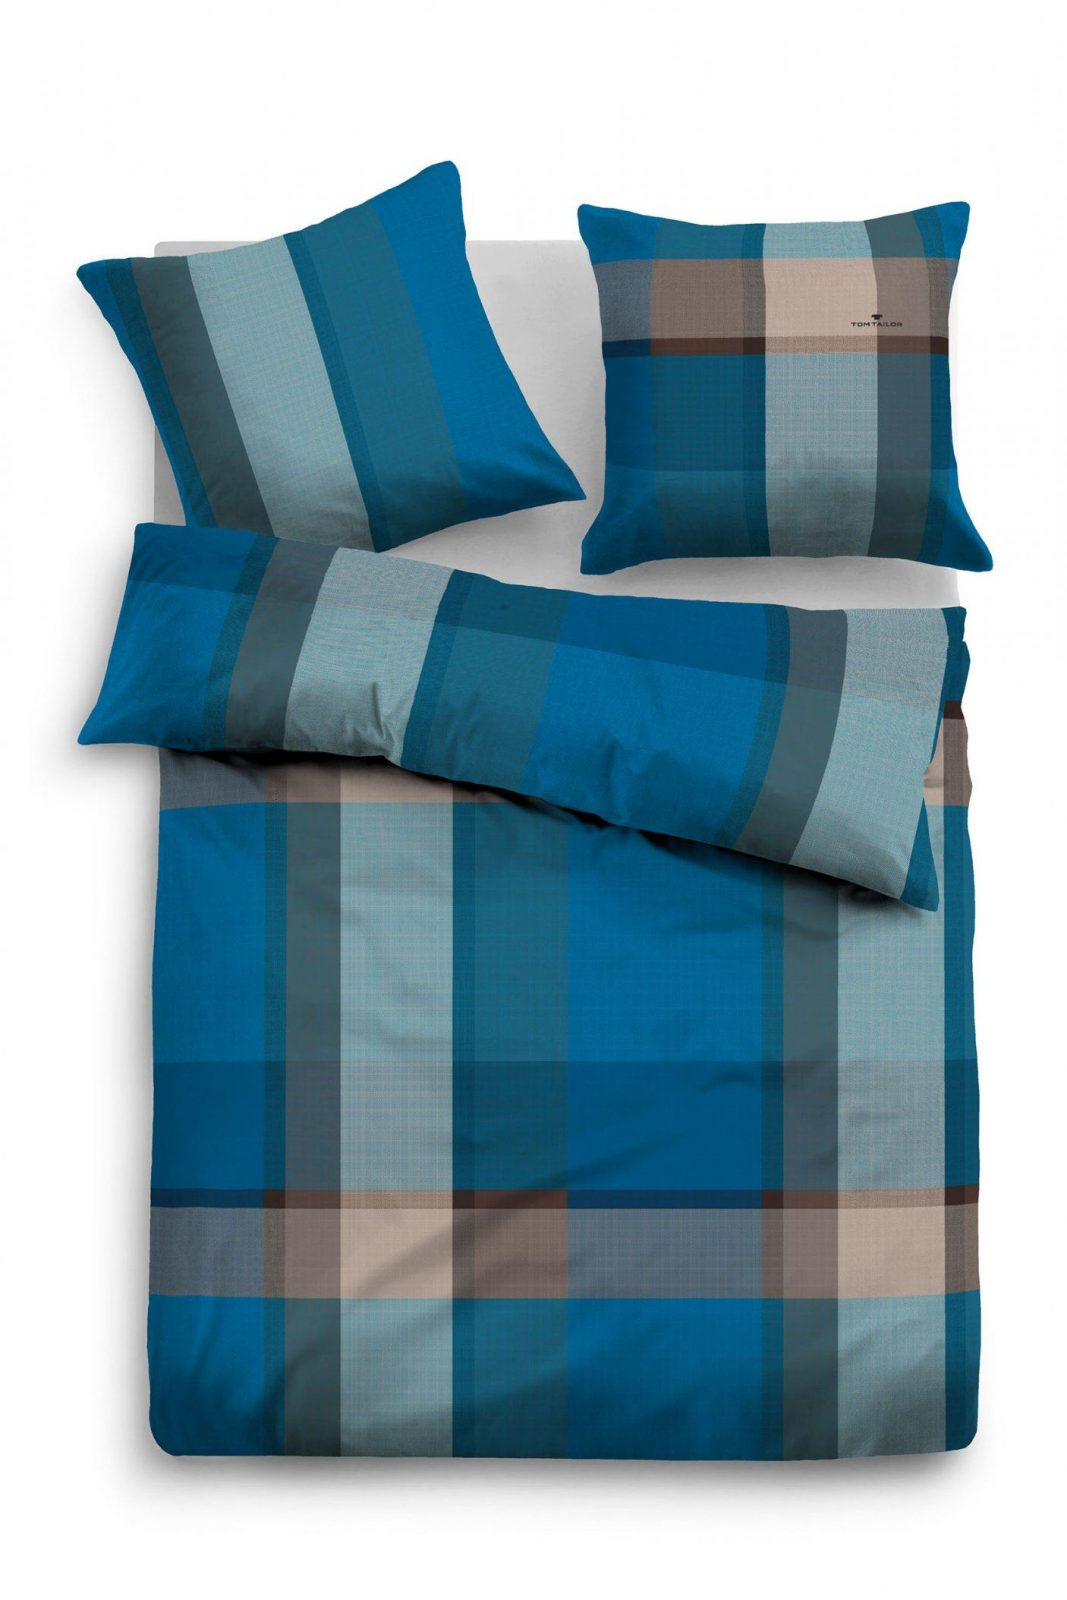 "Tom Tailor Flanell Bettwäsche ""blue Plaid"" Blaugrau  Beauty von Tom Tailor Bettwäsche Flanell Photo"